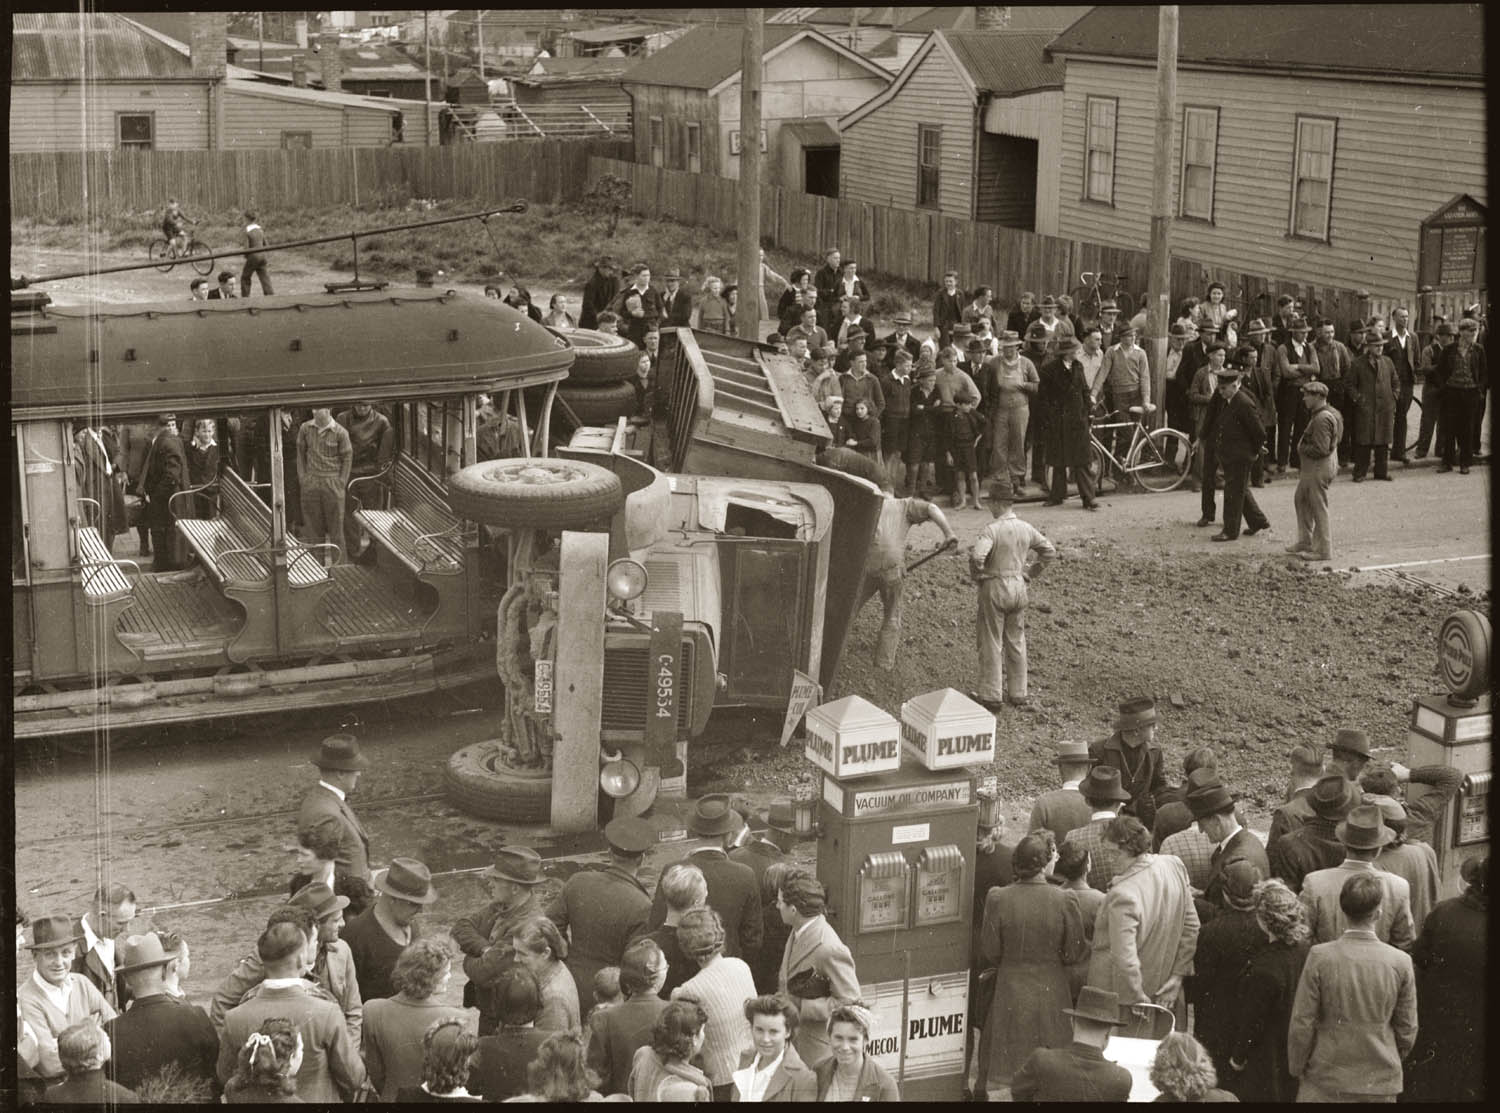 Tram and overturned dirt truck after collision, Botany Road Mascot, early 1940s.